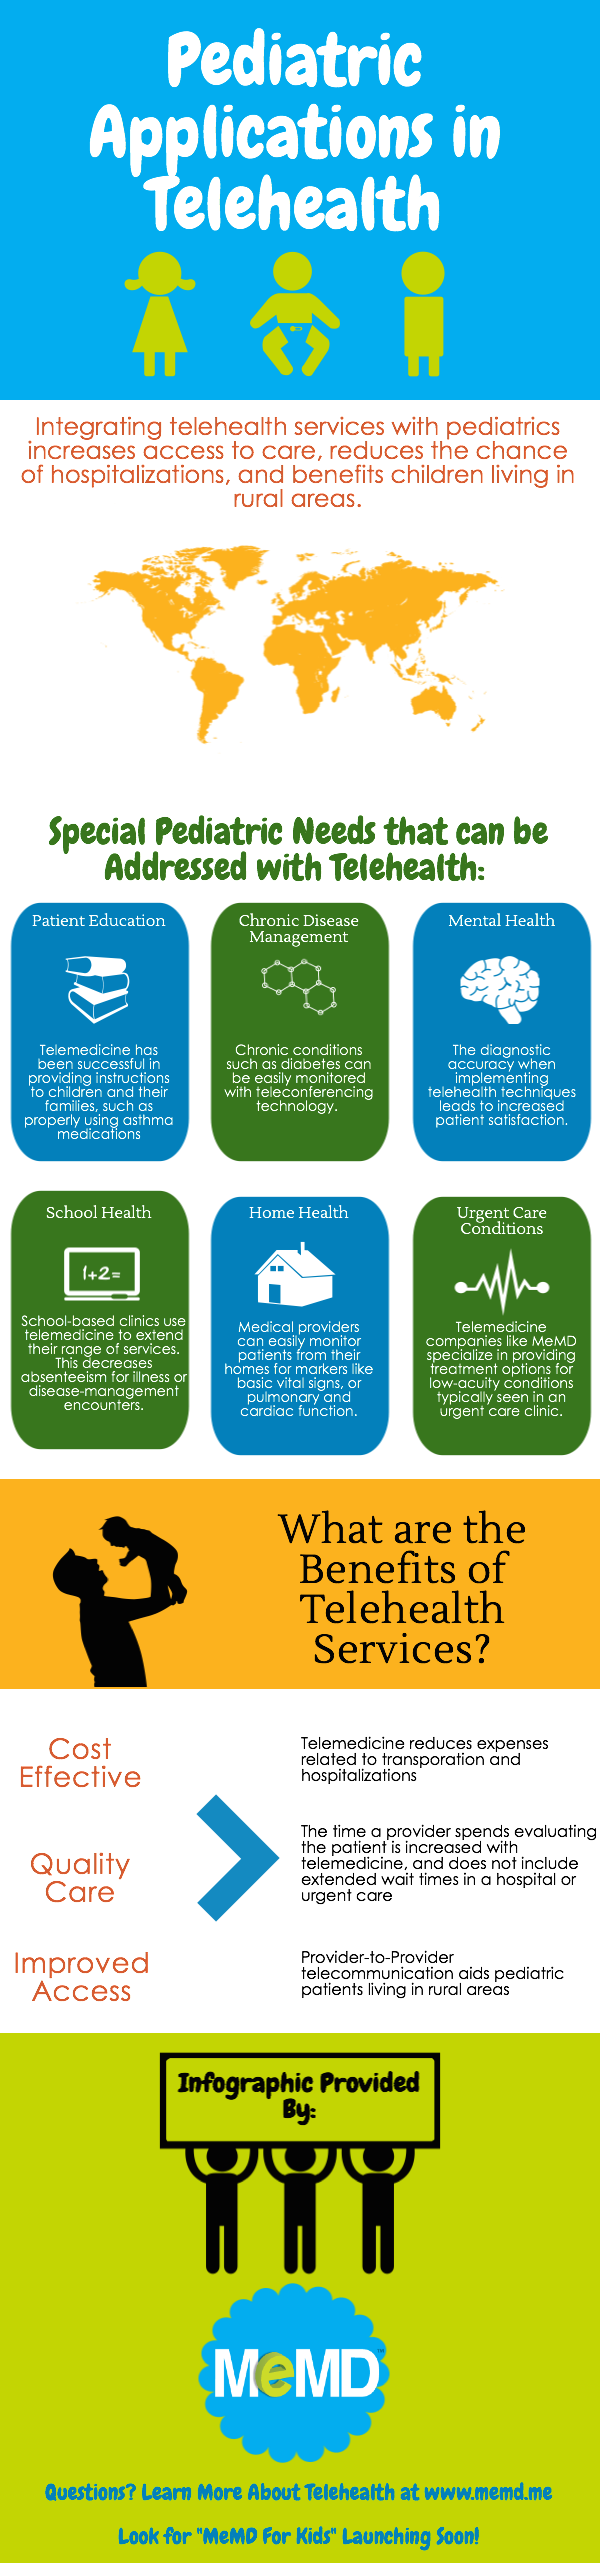 Pediatric Applications in Telehealth (Infographic)